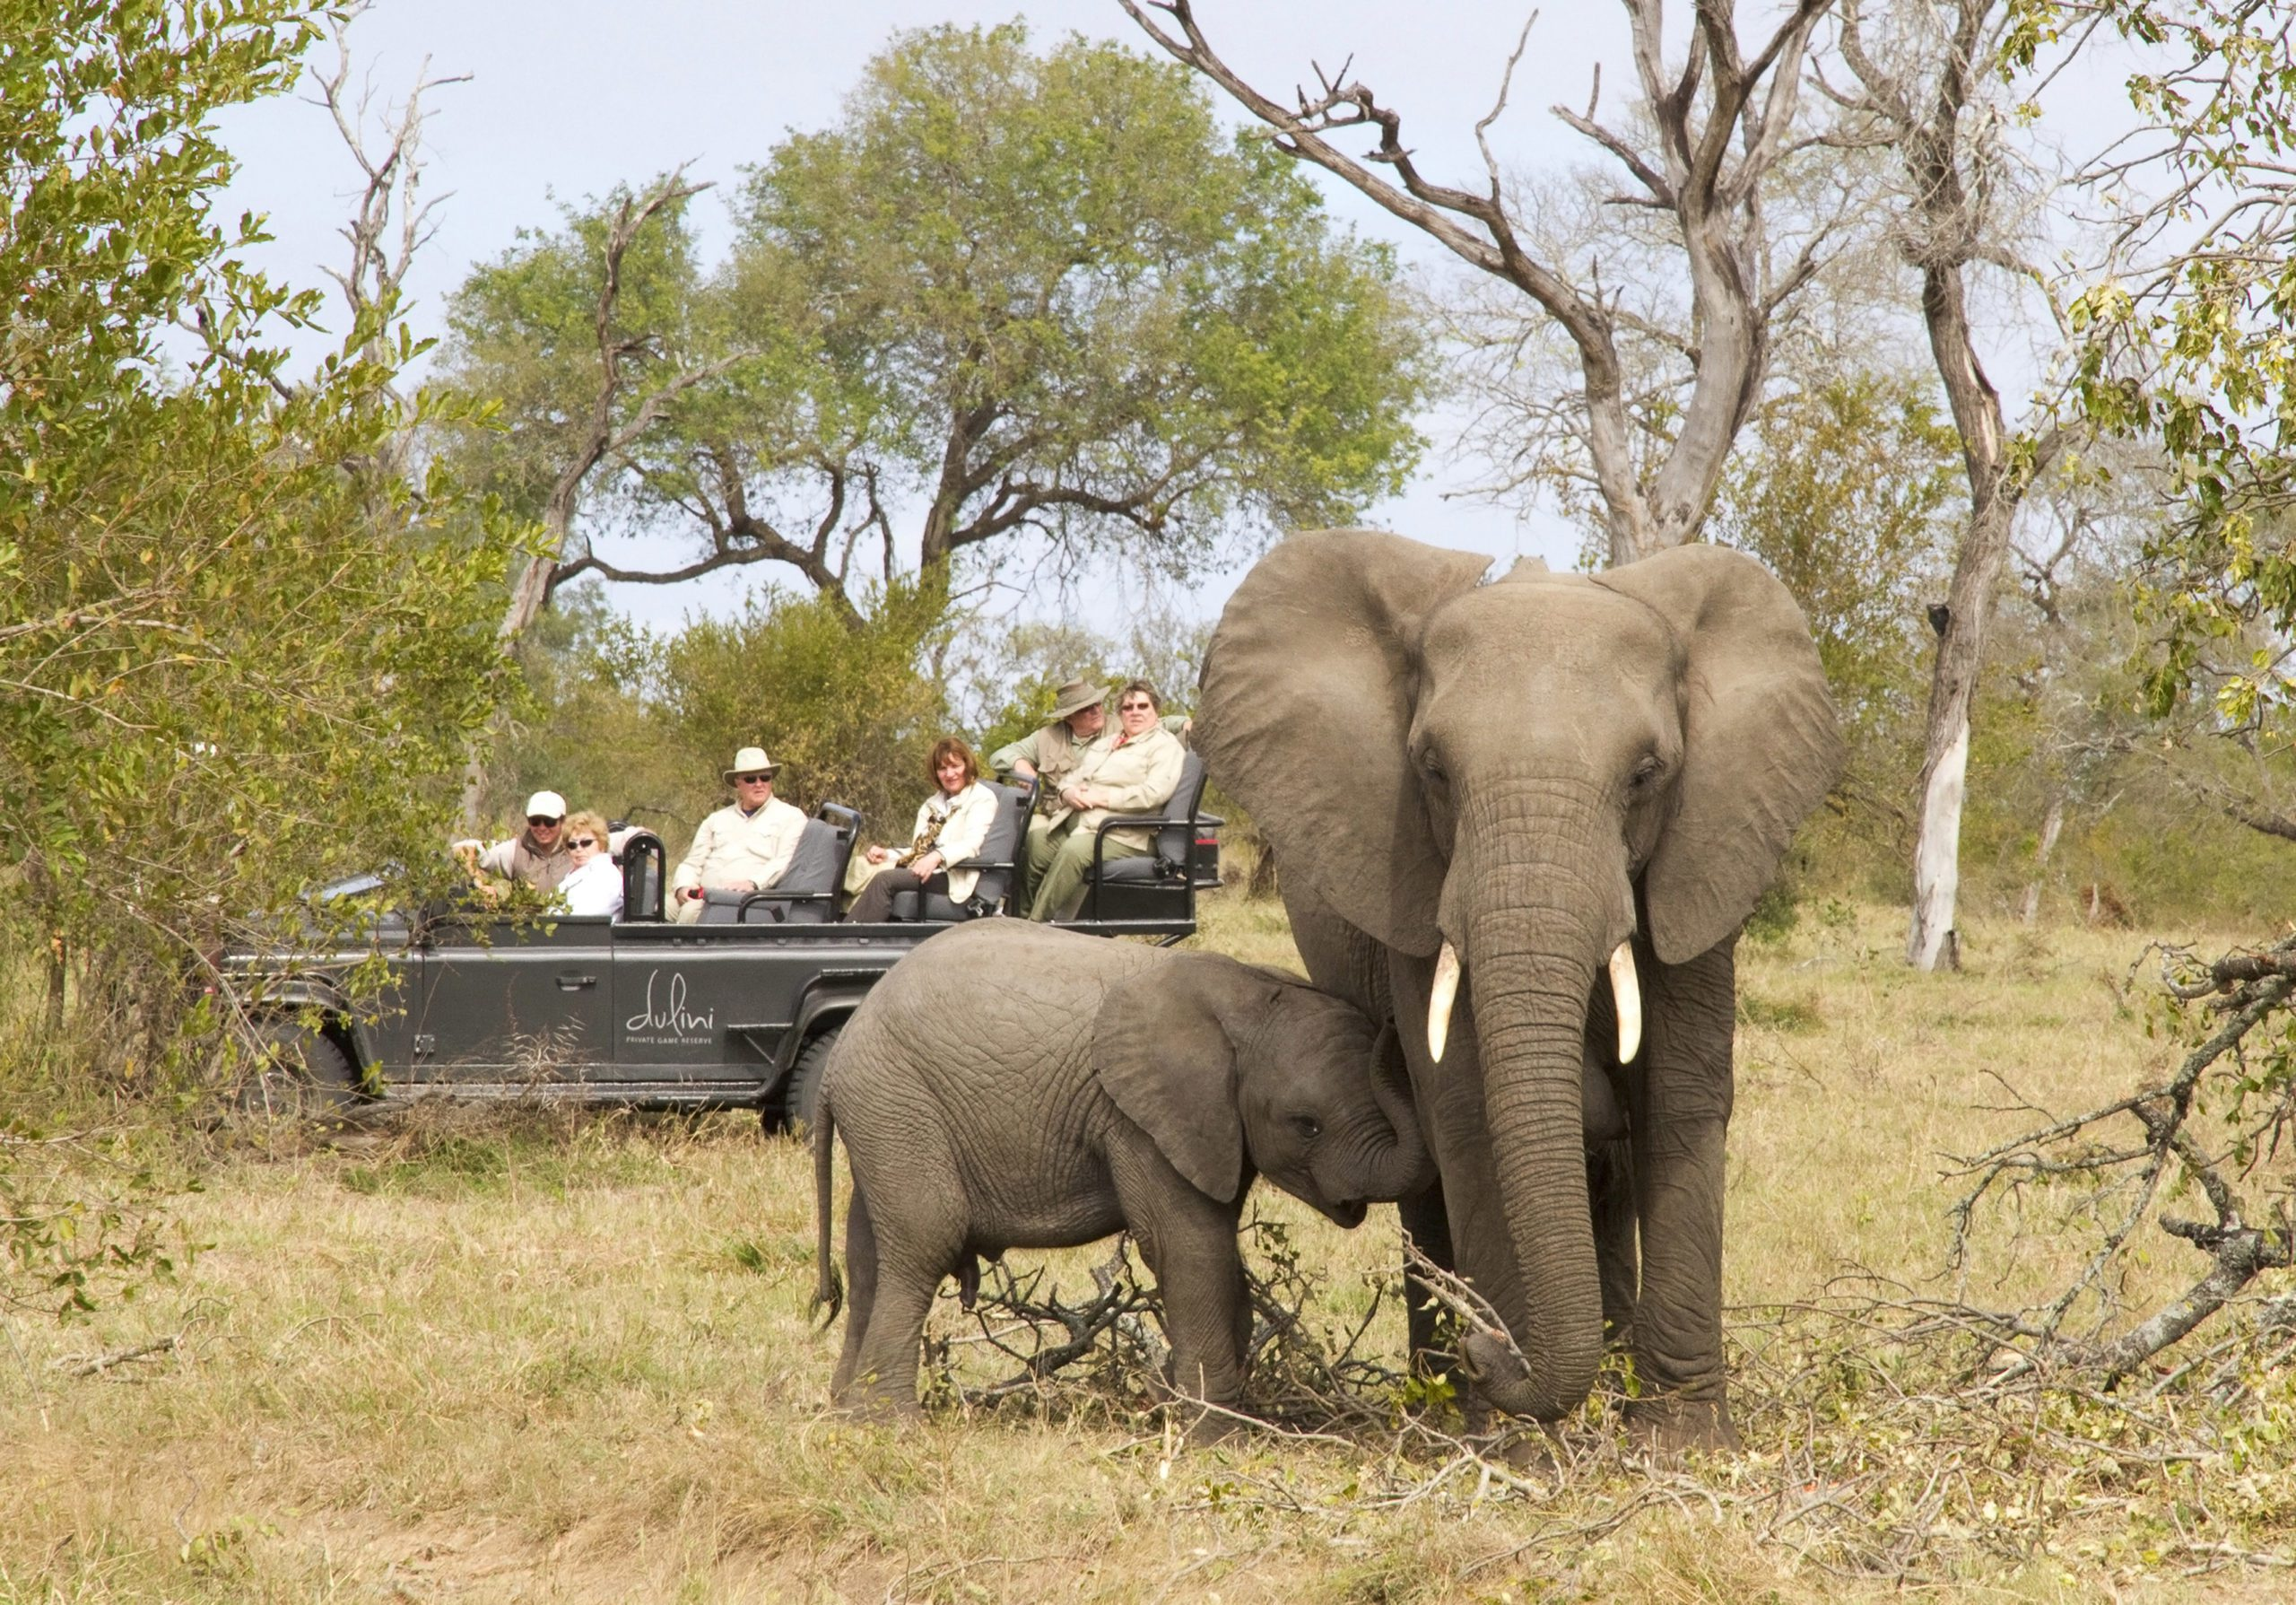 mother and baby elephant grazing on grass while guests from dulini lodge watch in their vehicle